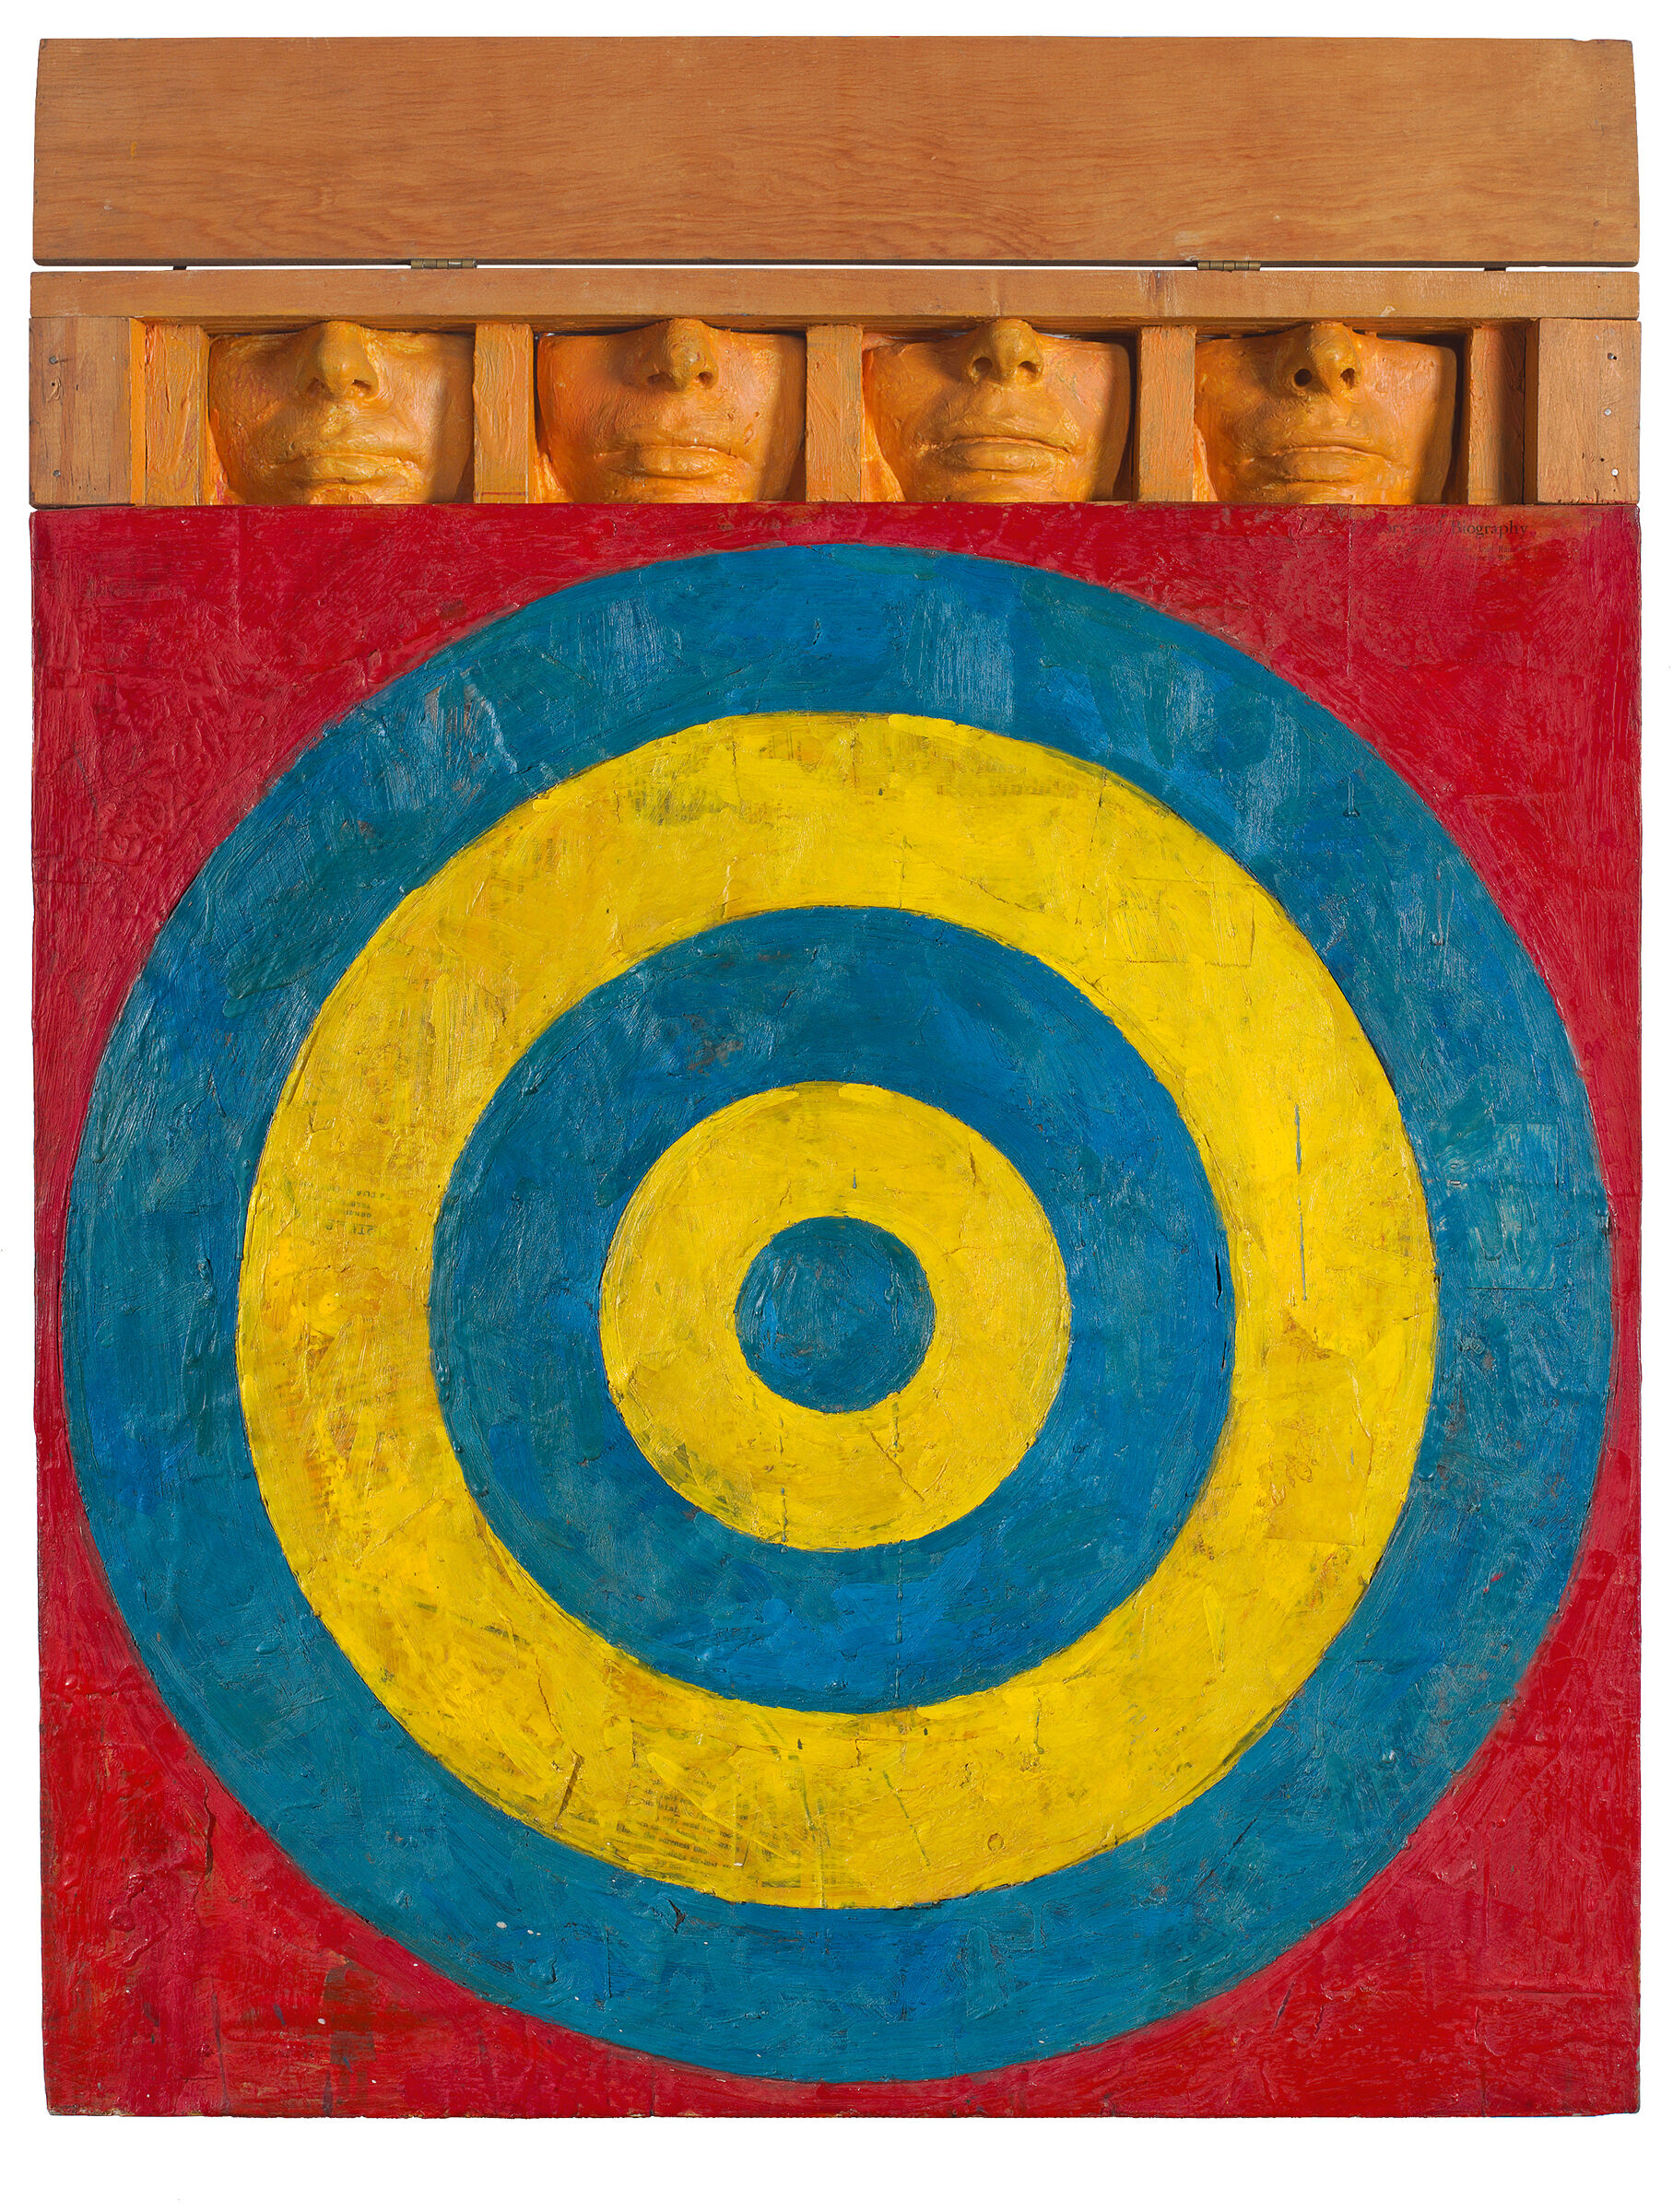 Blue and yellow target on a red background, with the sculpted lower halves of four faces above.